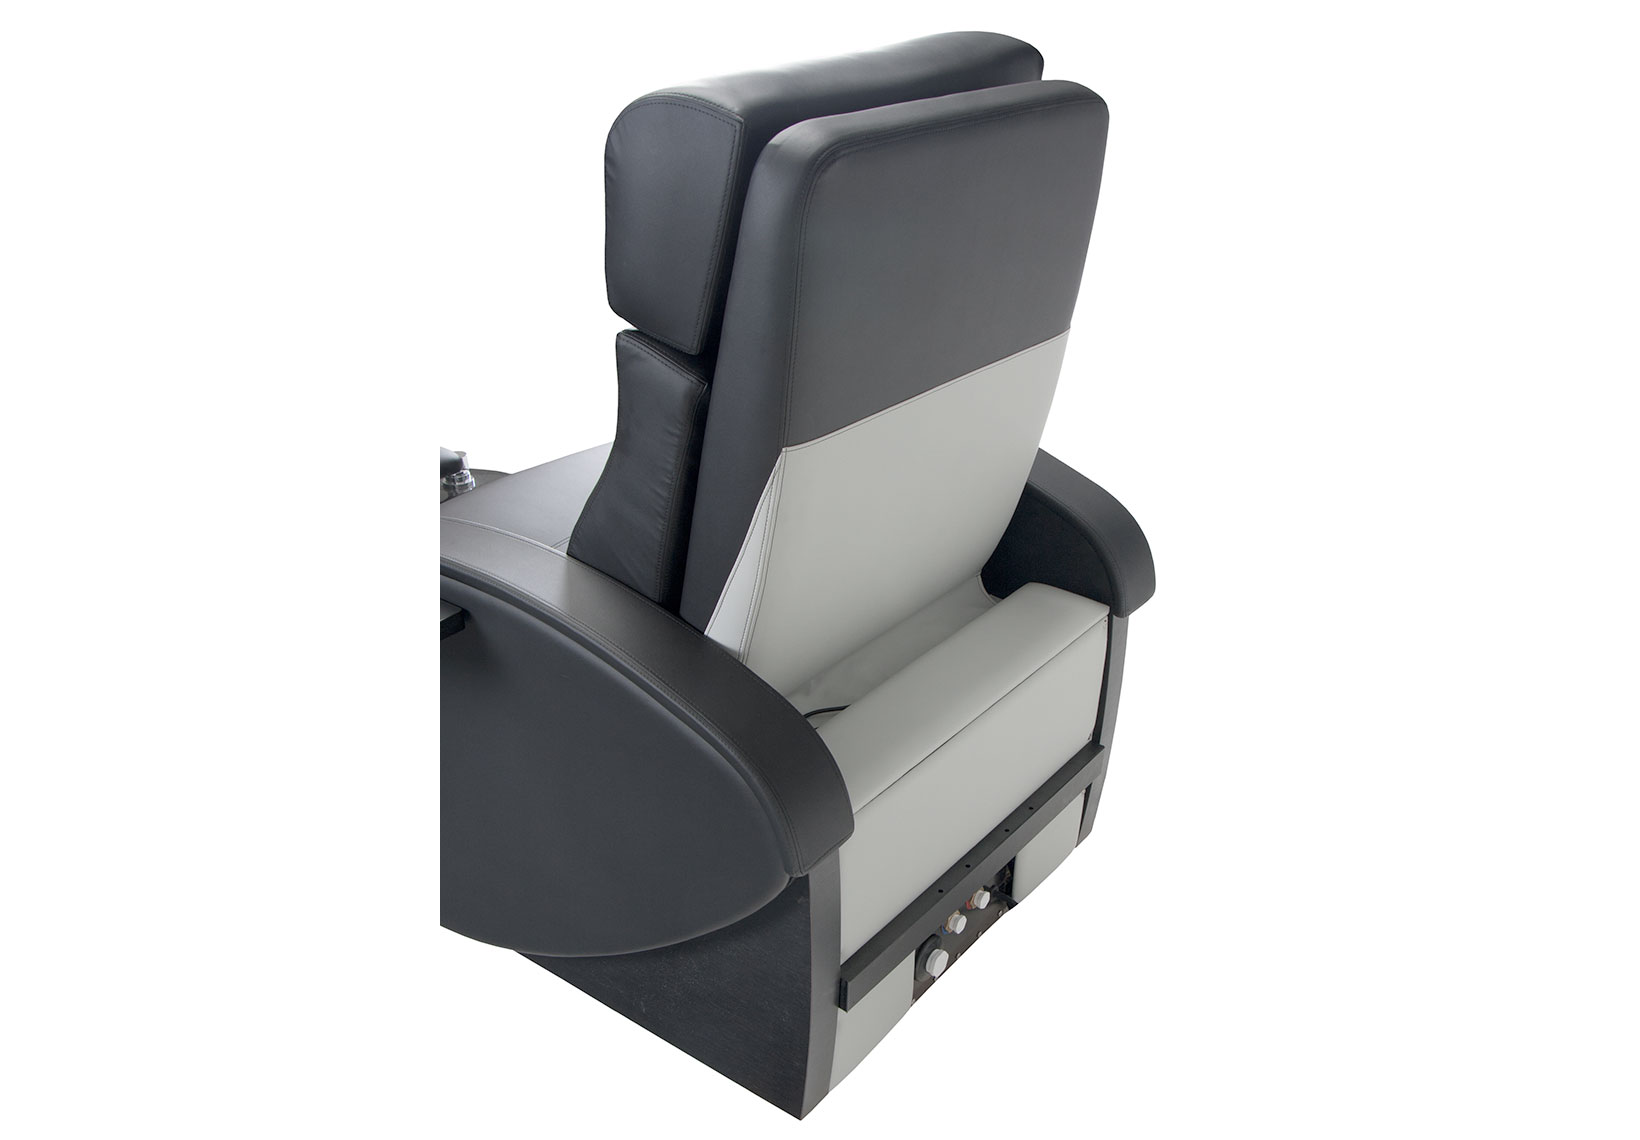 Contour Lx Pedicure Chair With Tilt Living Earth Crafts Spavision Global Leading Spa Equipment Supplier